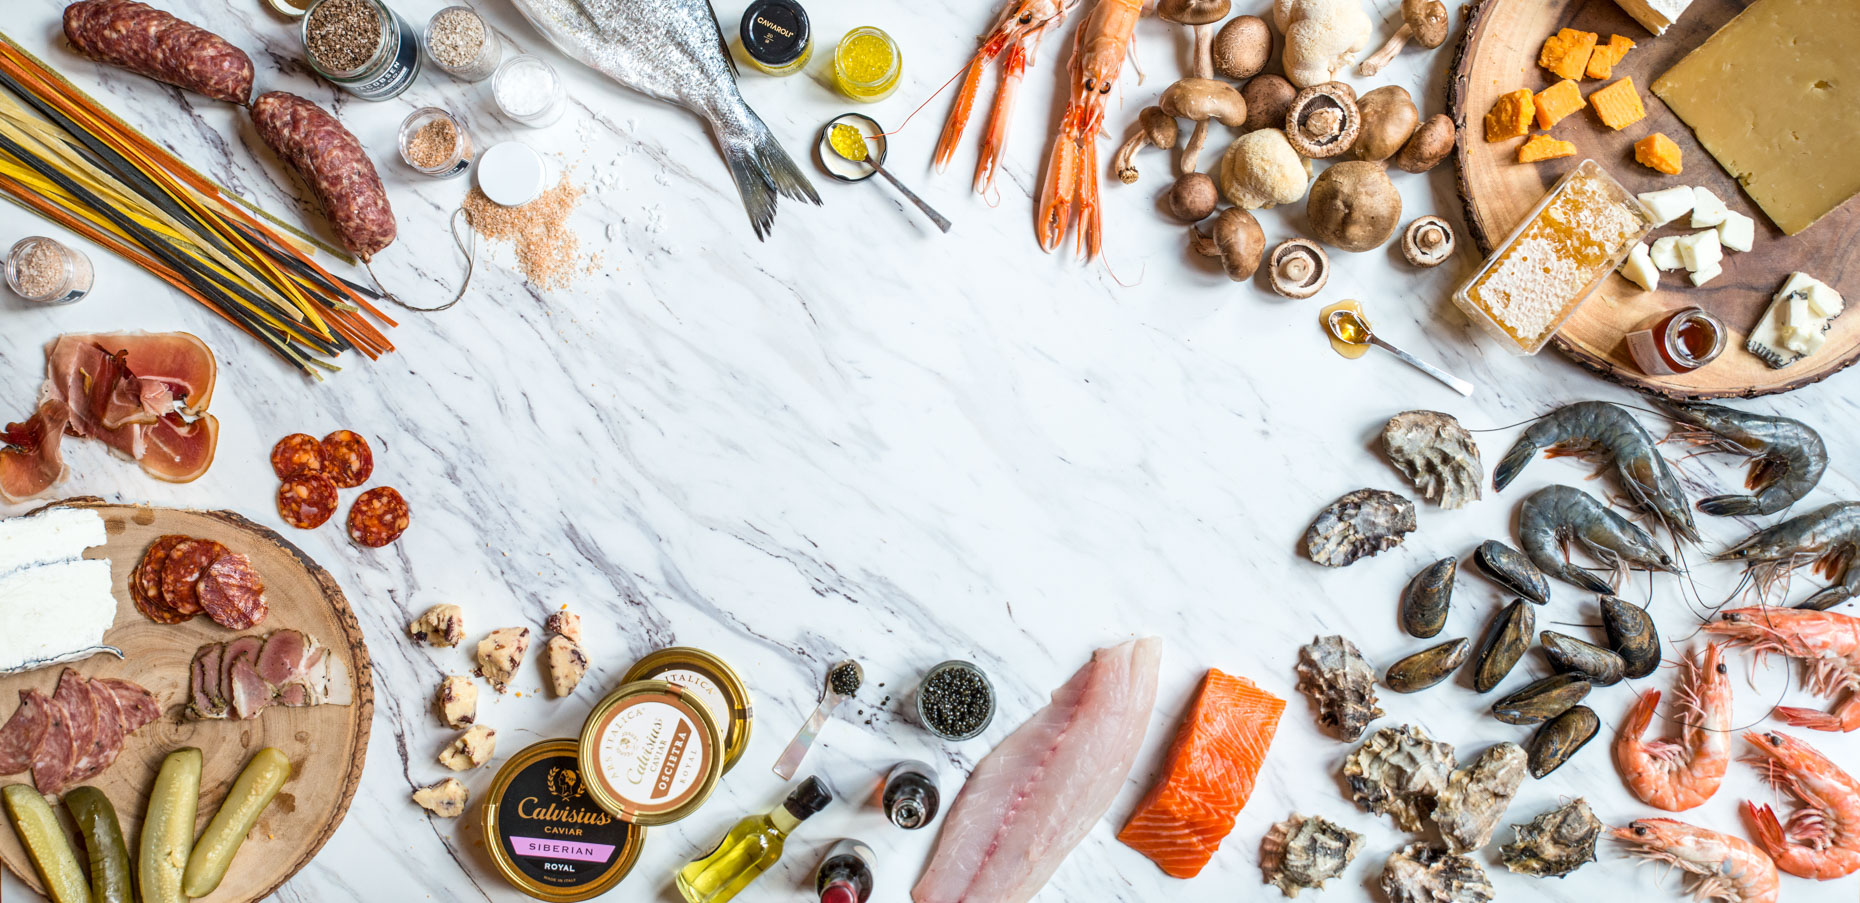 Seafood Ingredients and Gourmet Food Products on Marble Backdrop